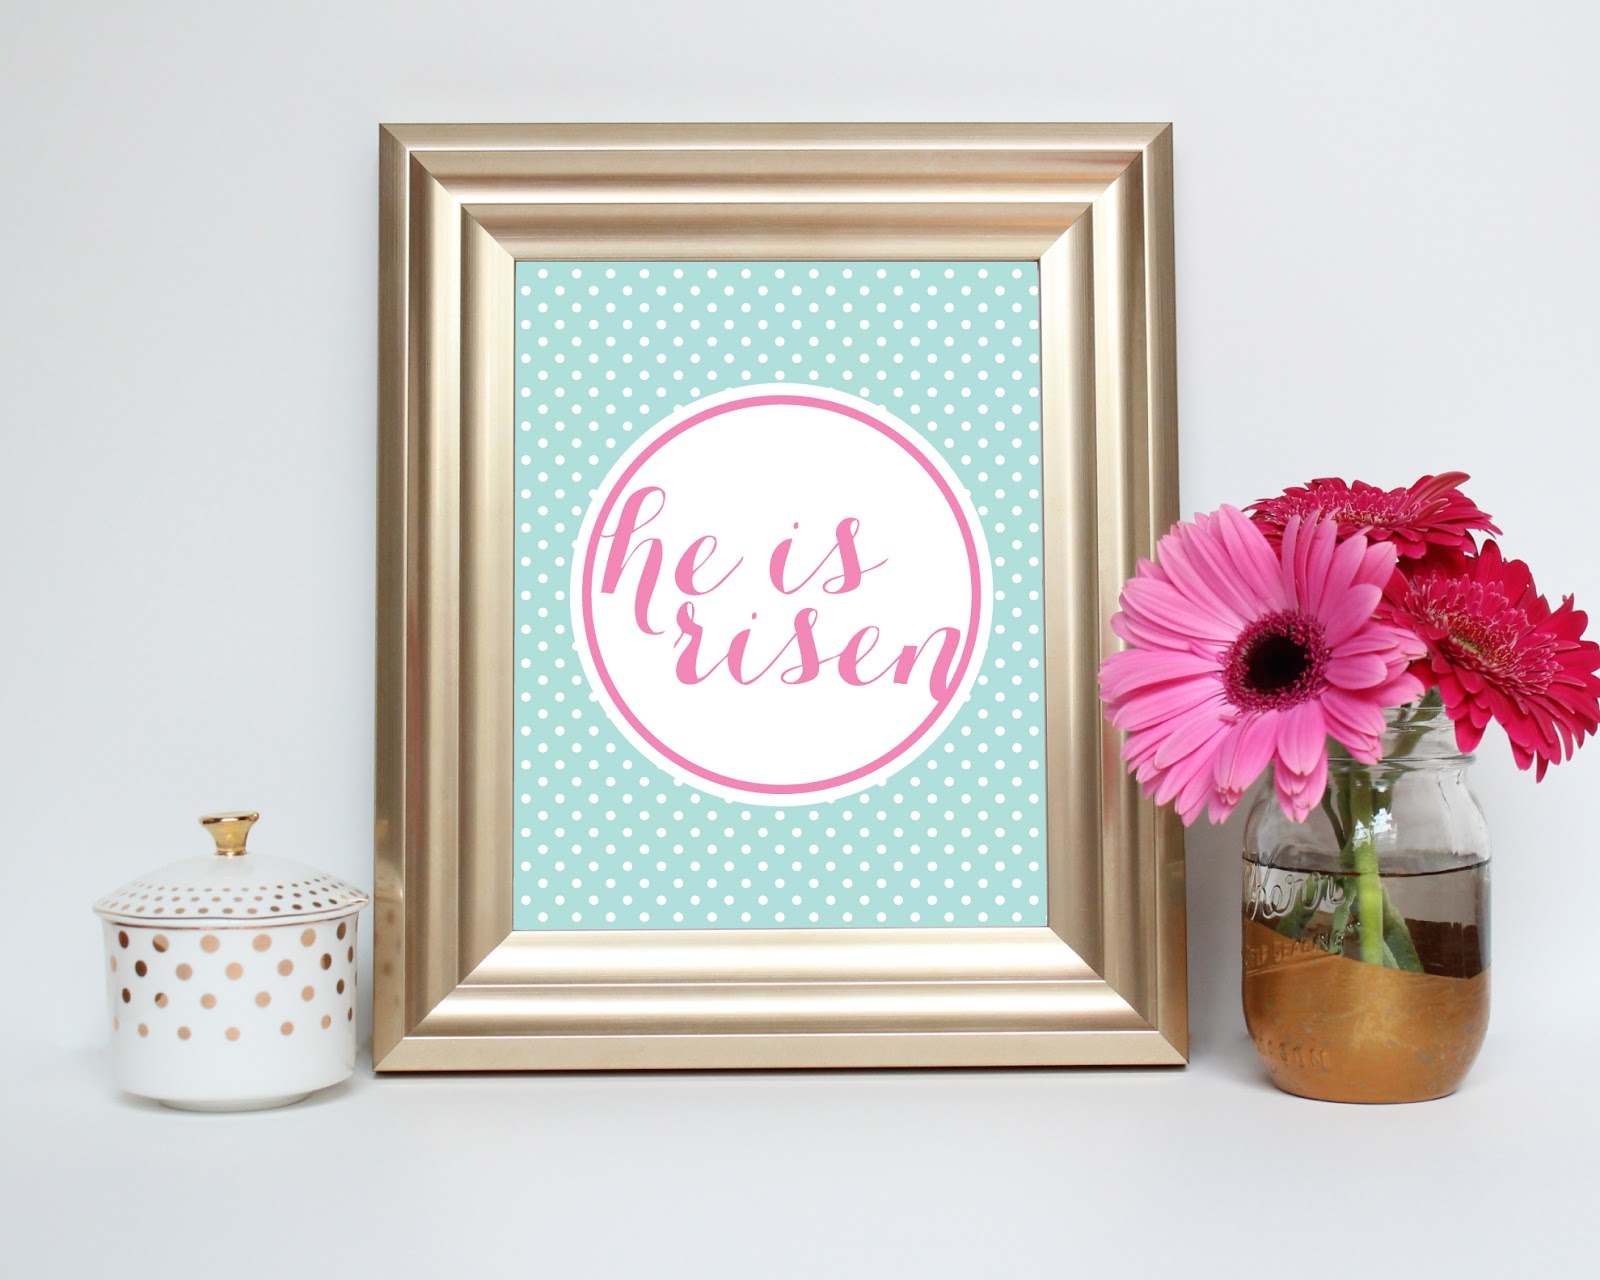 He is risen Printable by JM Print Shop